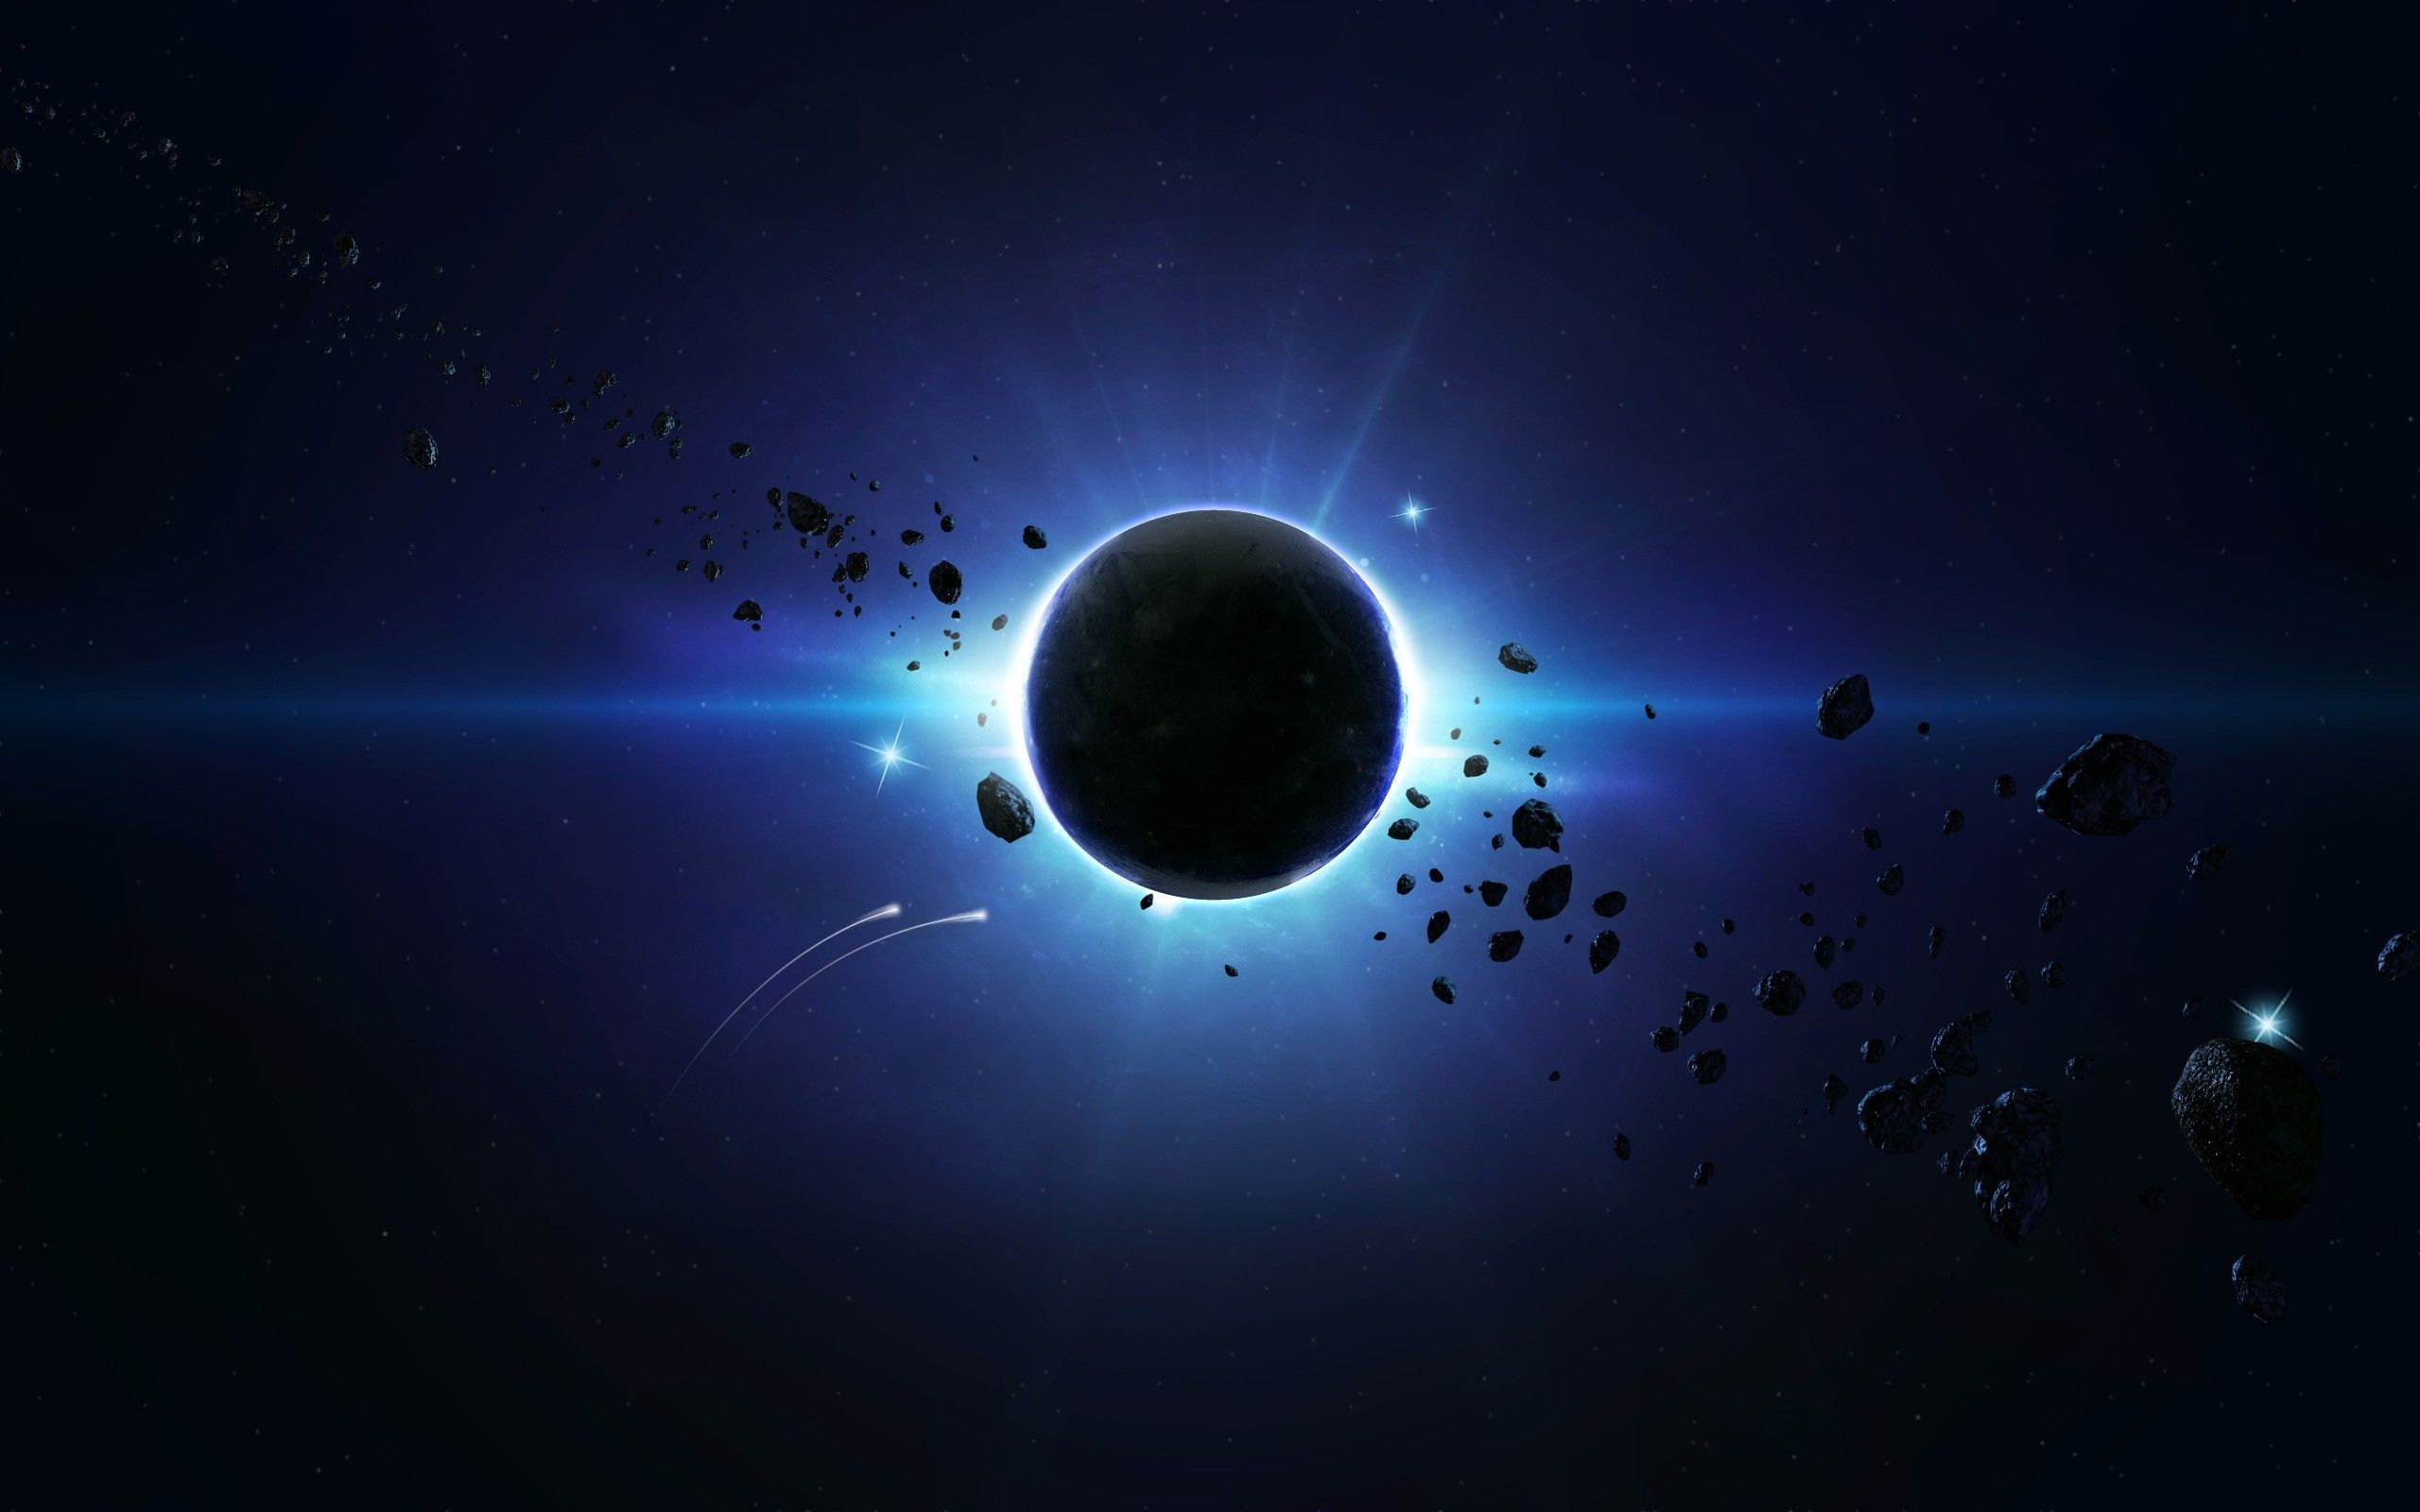 Eclipse Backgrounds Download 2560x1600